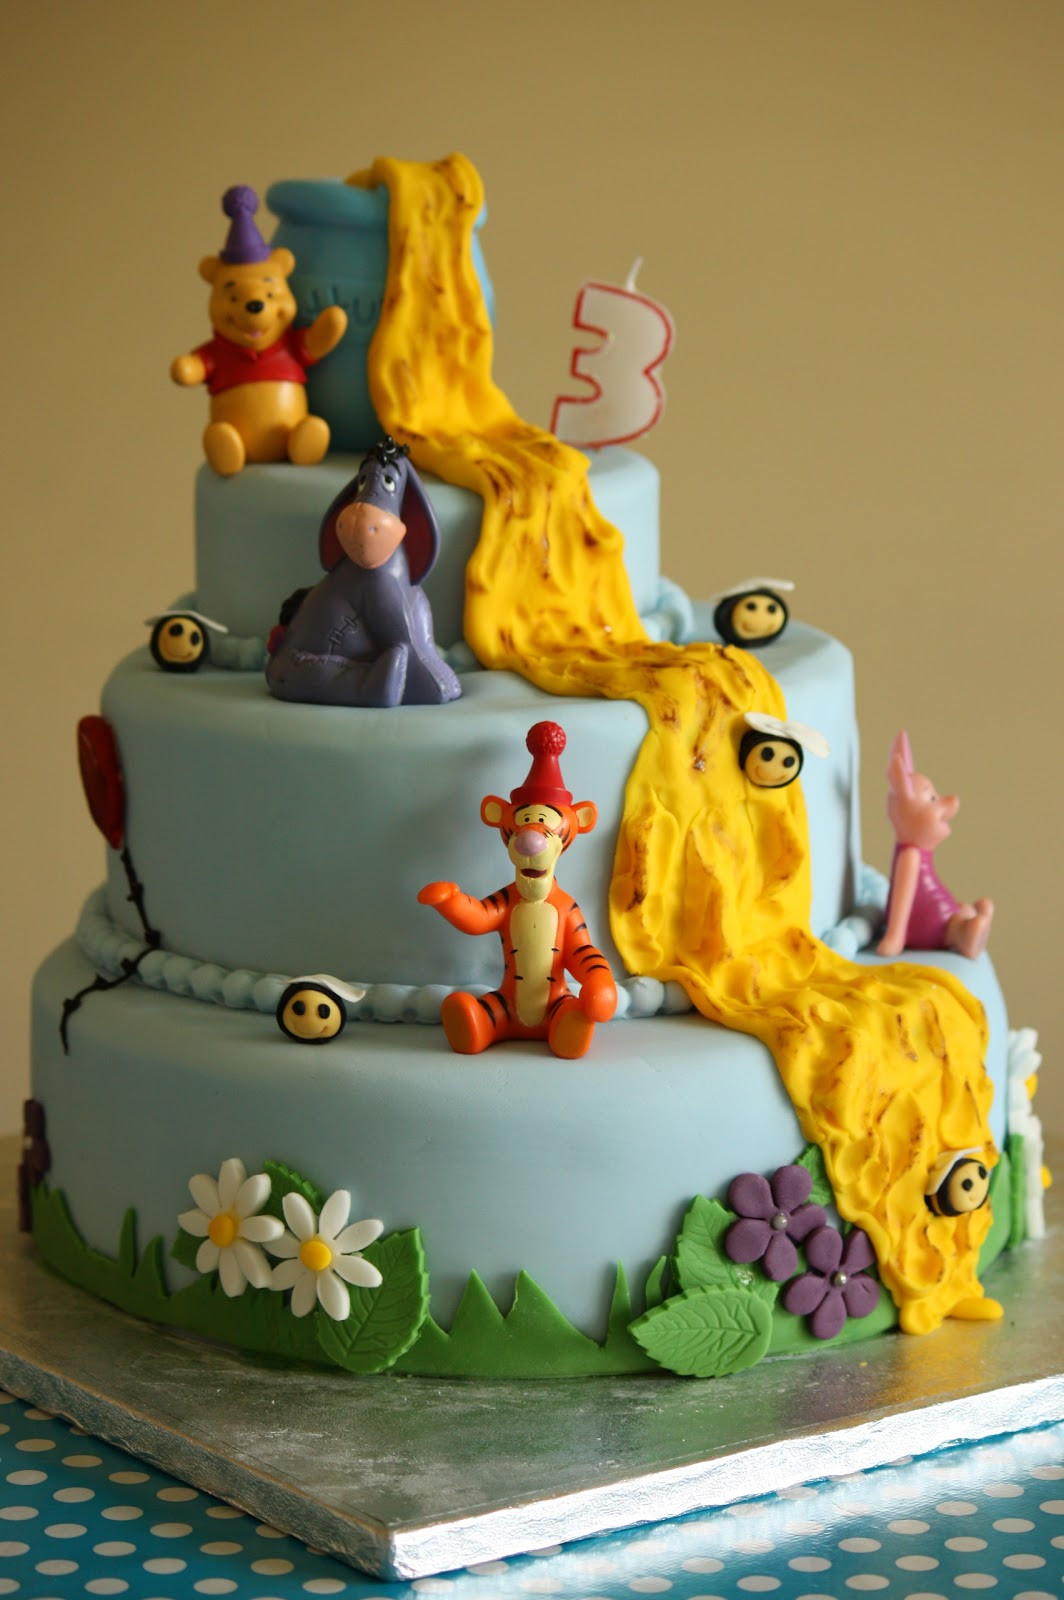 Best ideas about Winnie The Pooh Birthday Cake . Save or Pin Mellow Mummy The one with the epic Winnie the Pooh Now.